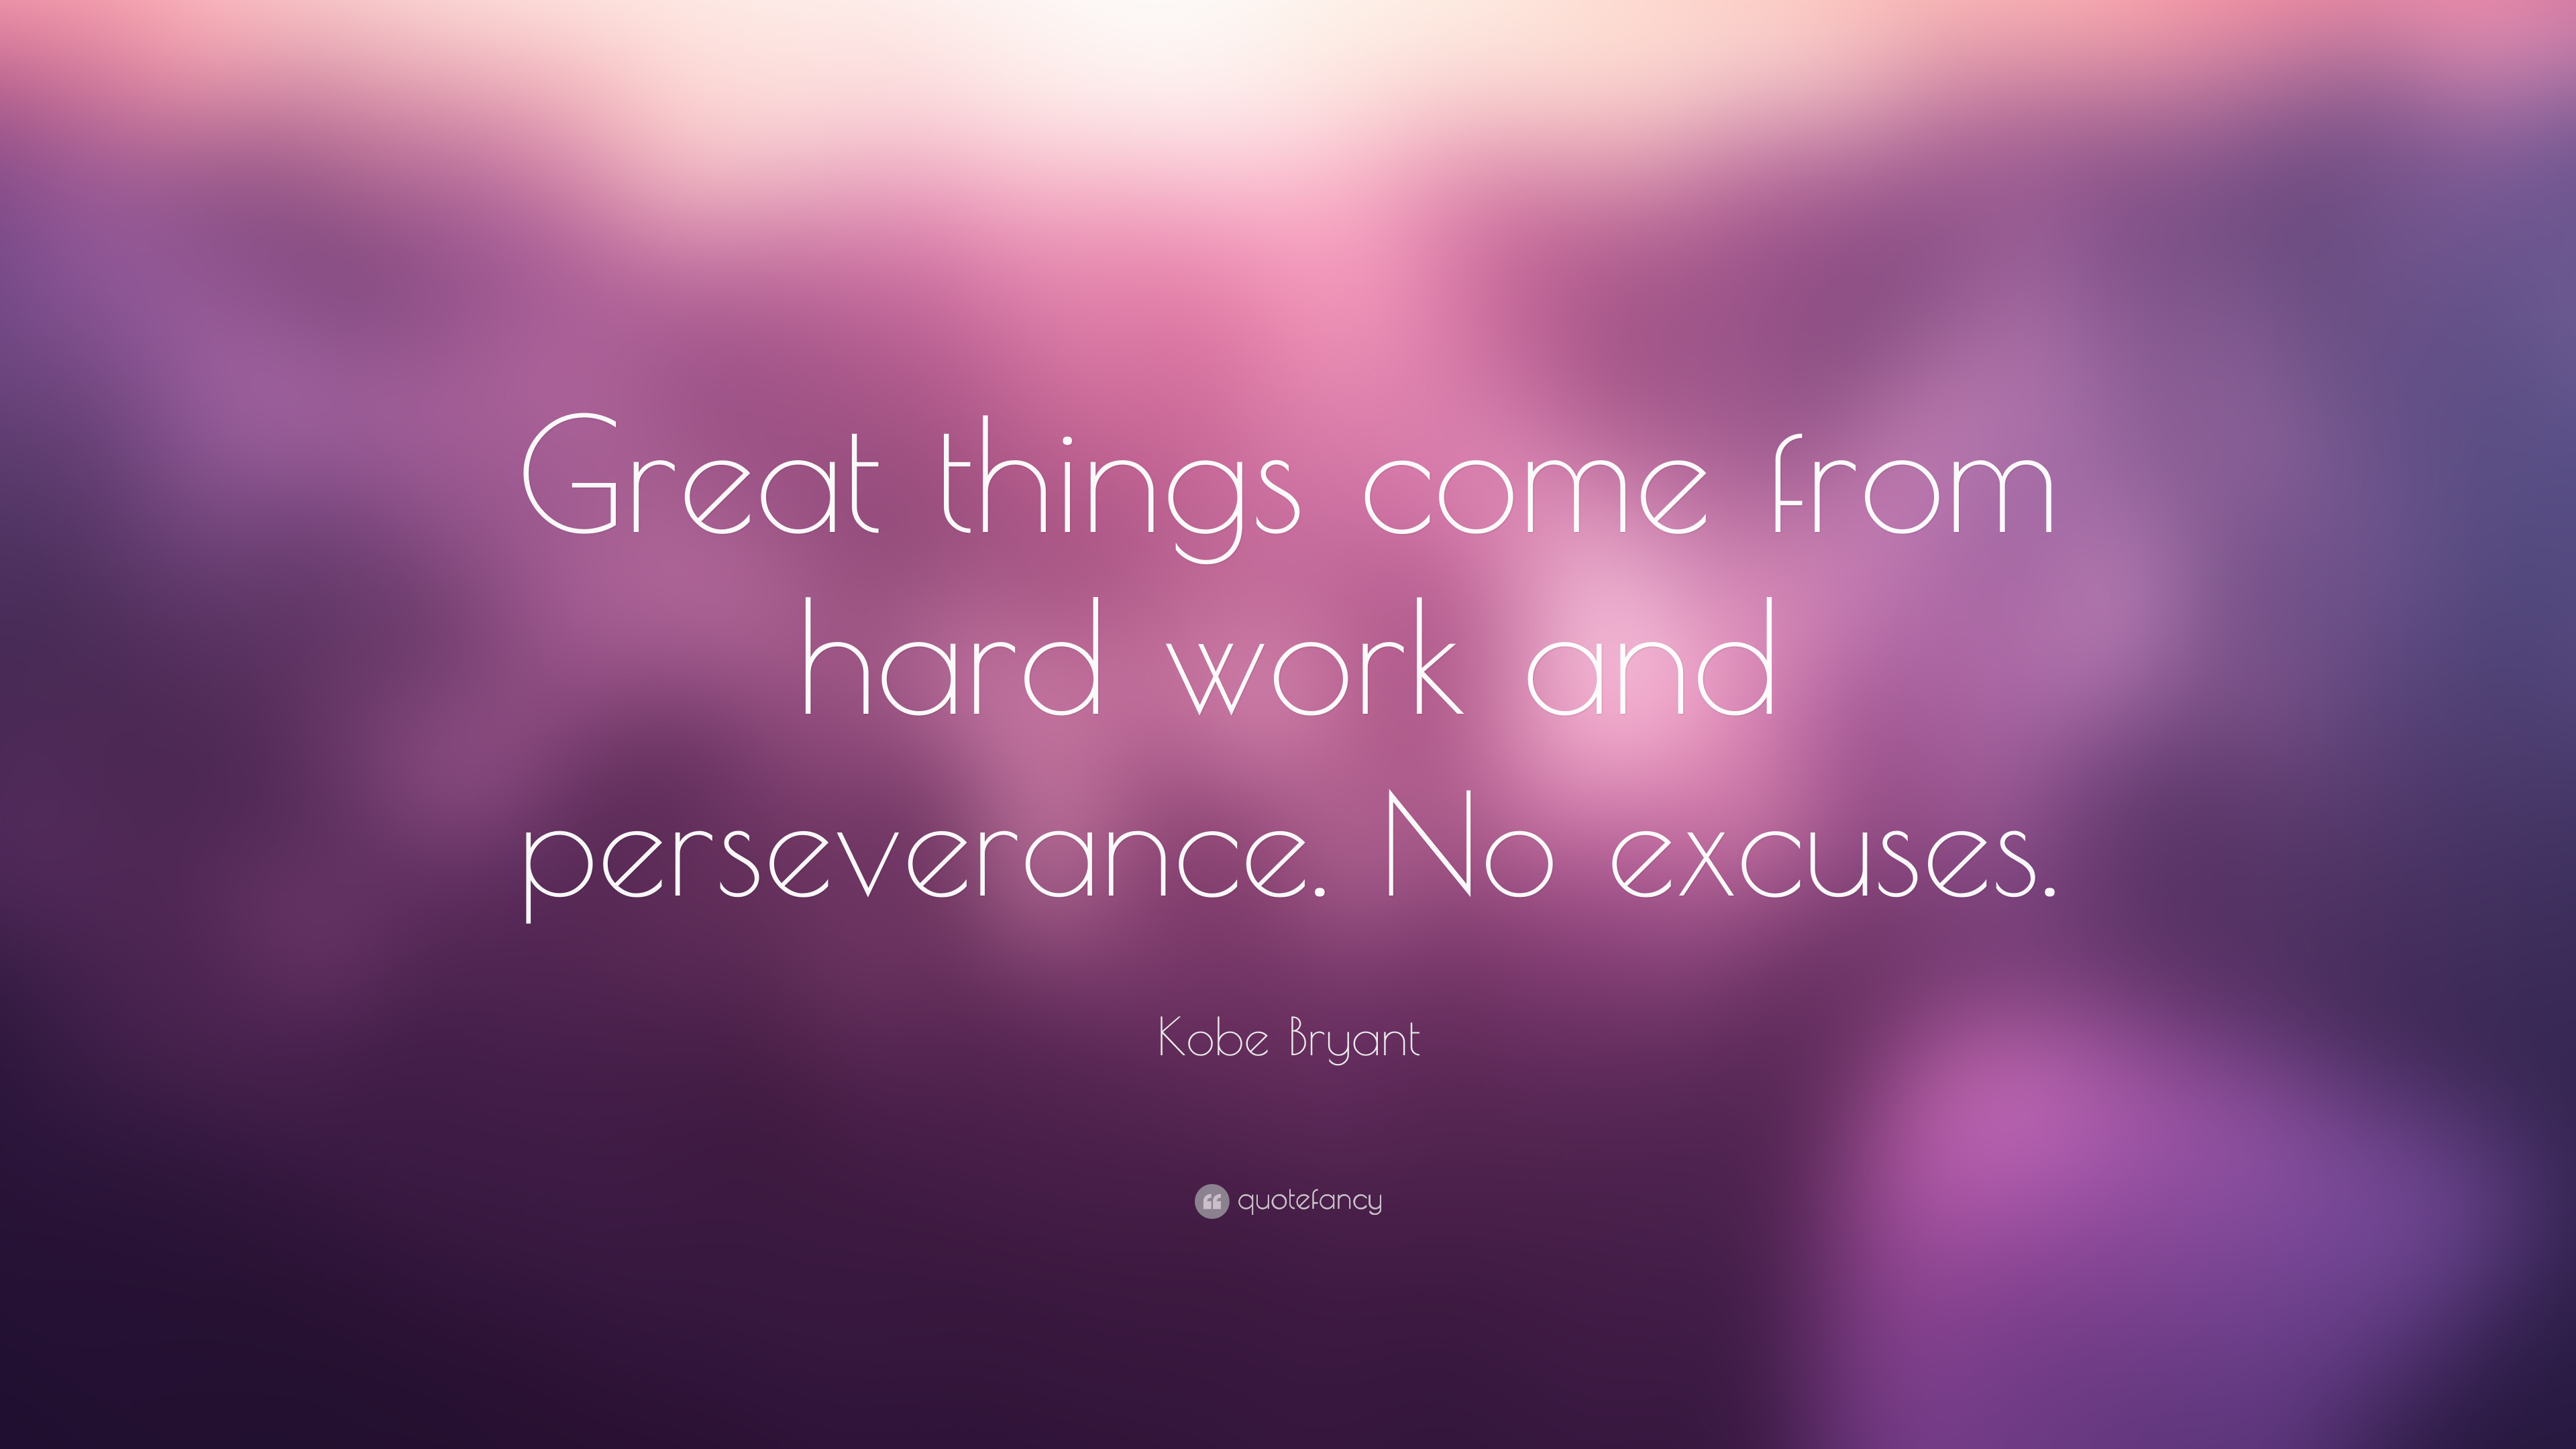 Success comes from perseverance and hard work